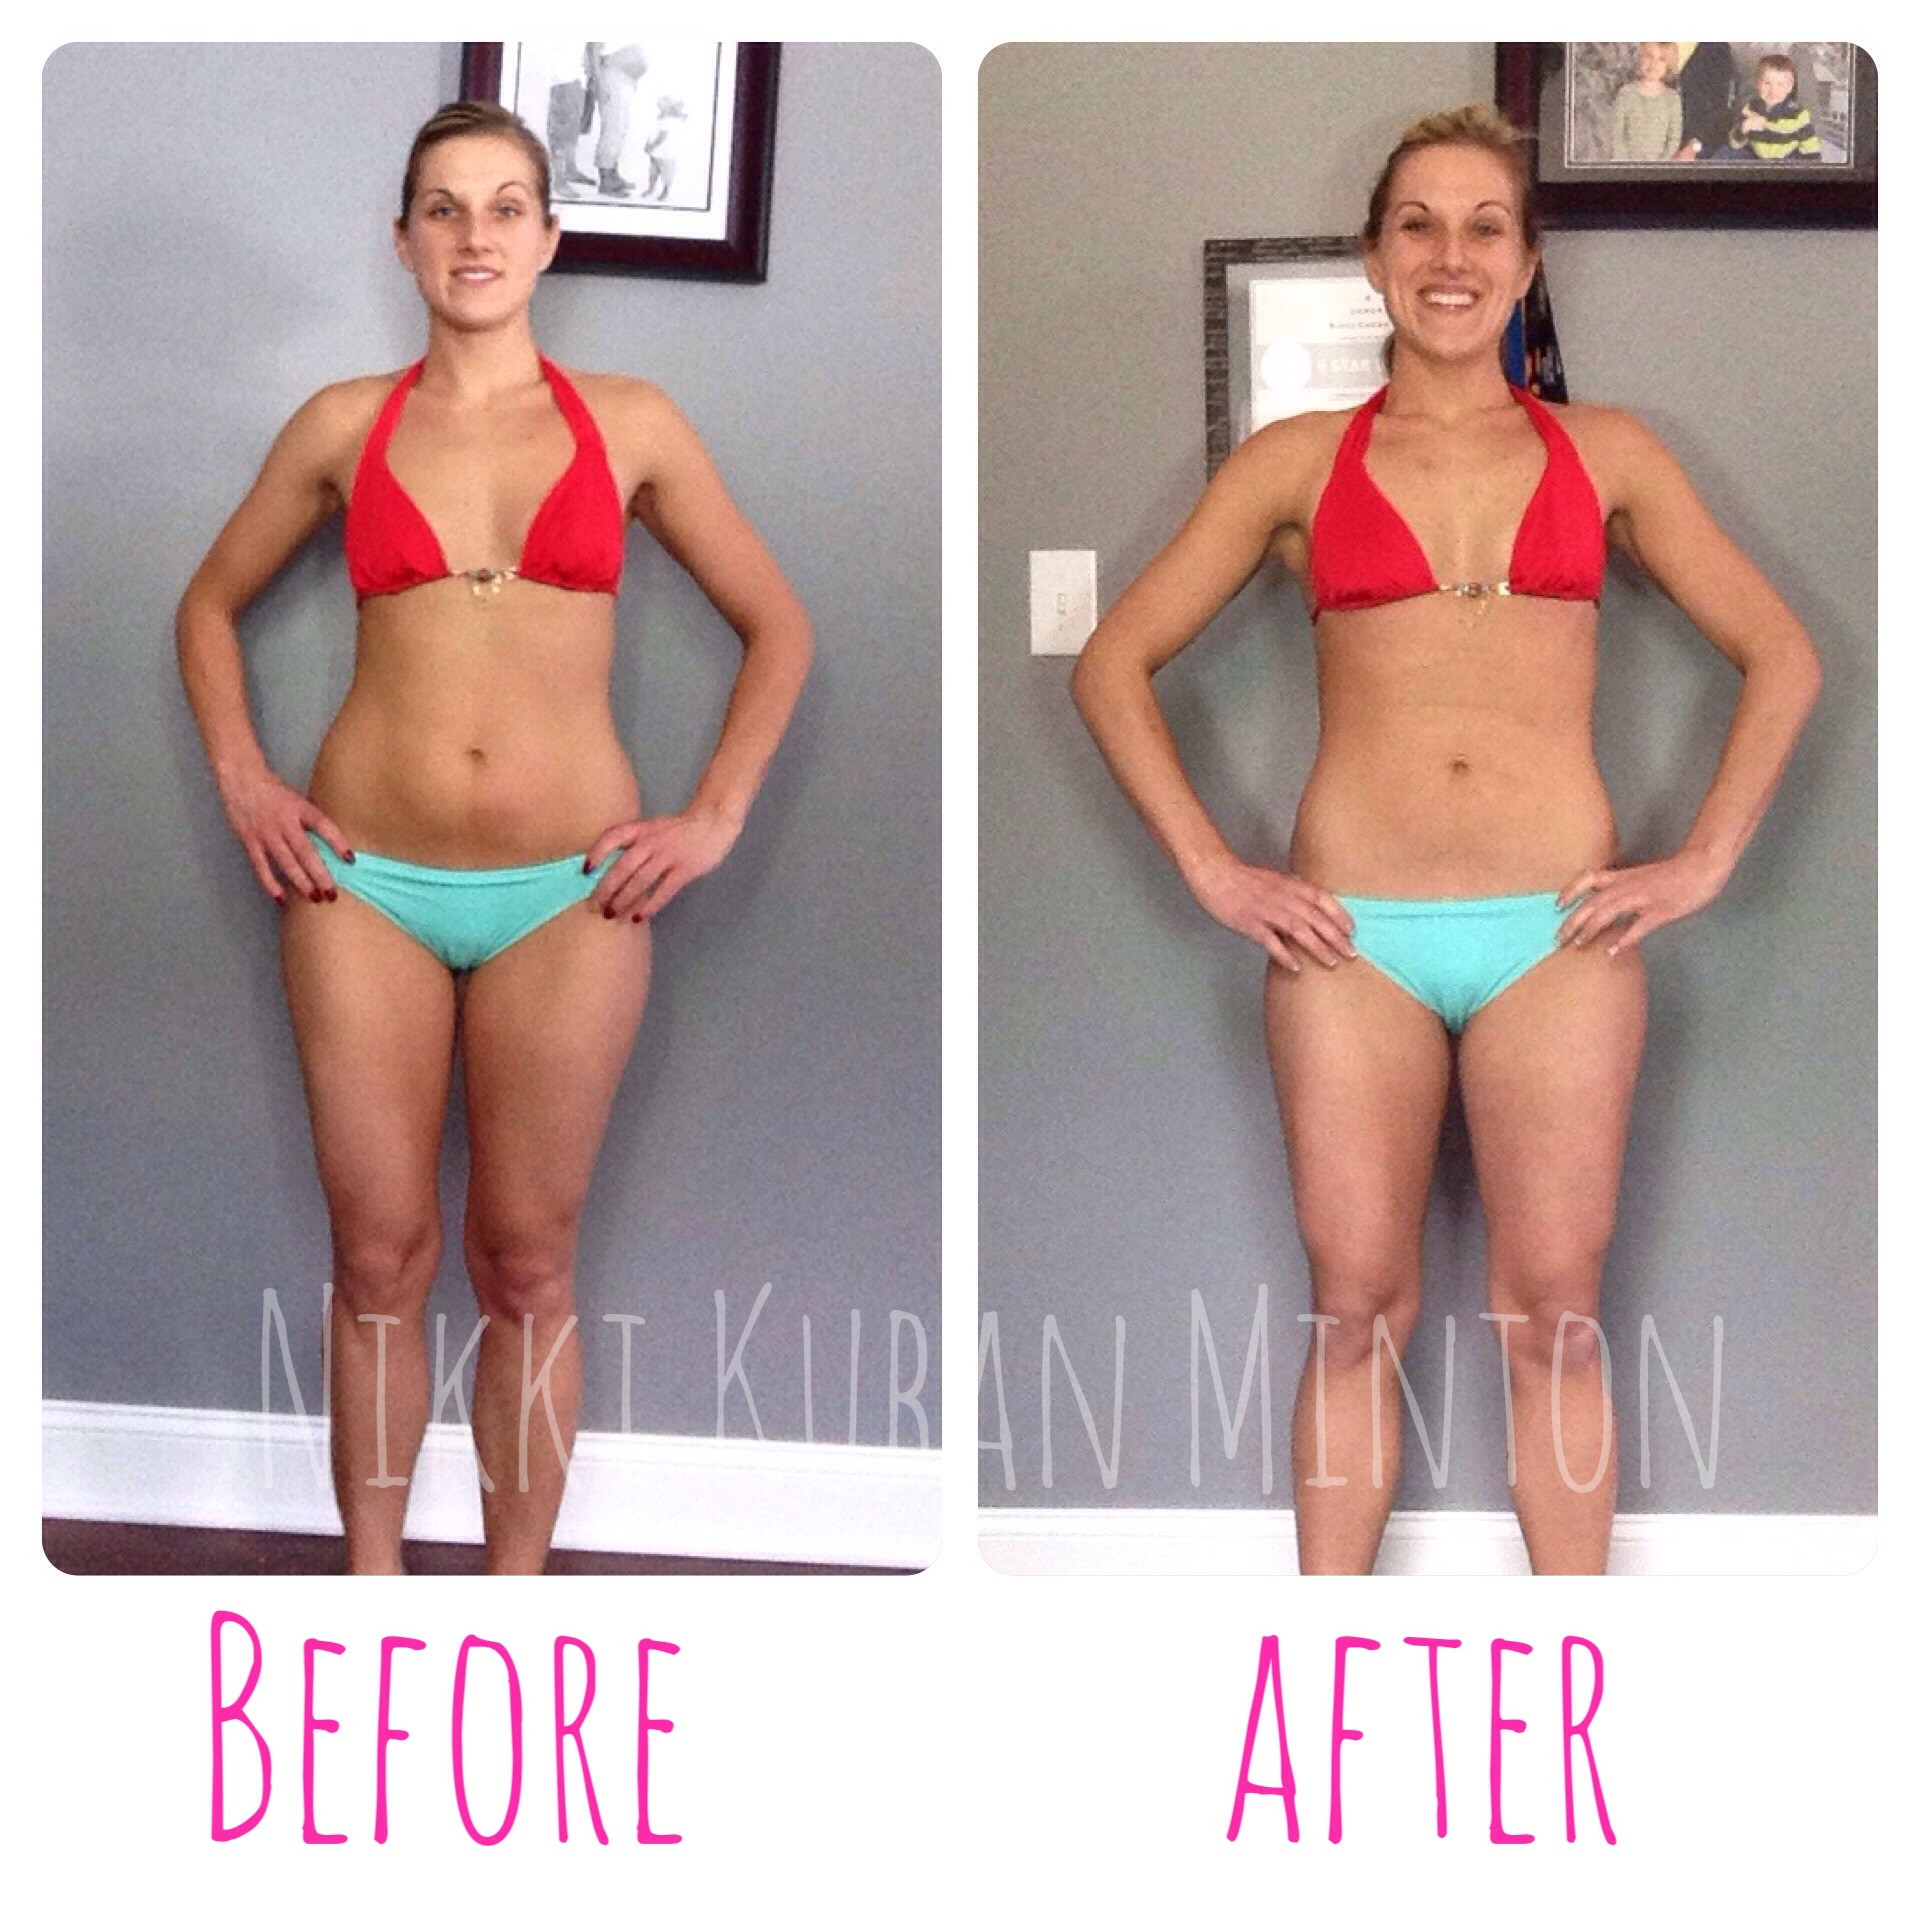 21 day Fix Results, Men and Women | Nikki Kuban Minton